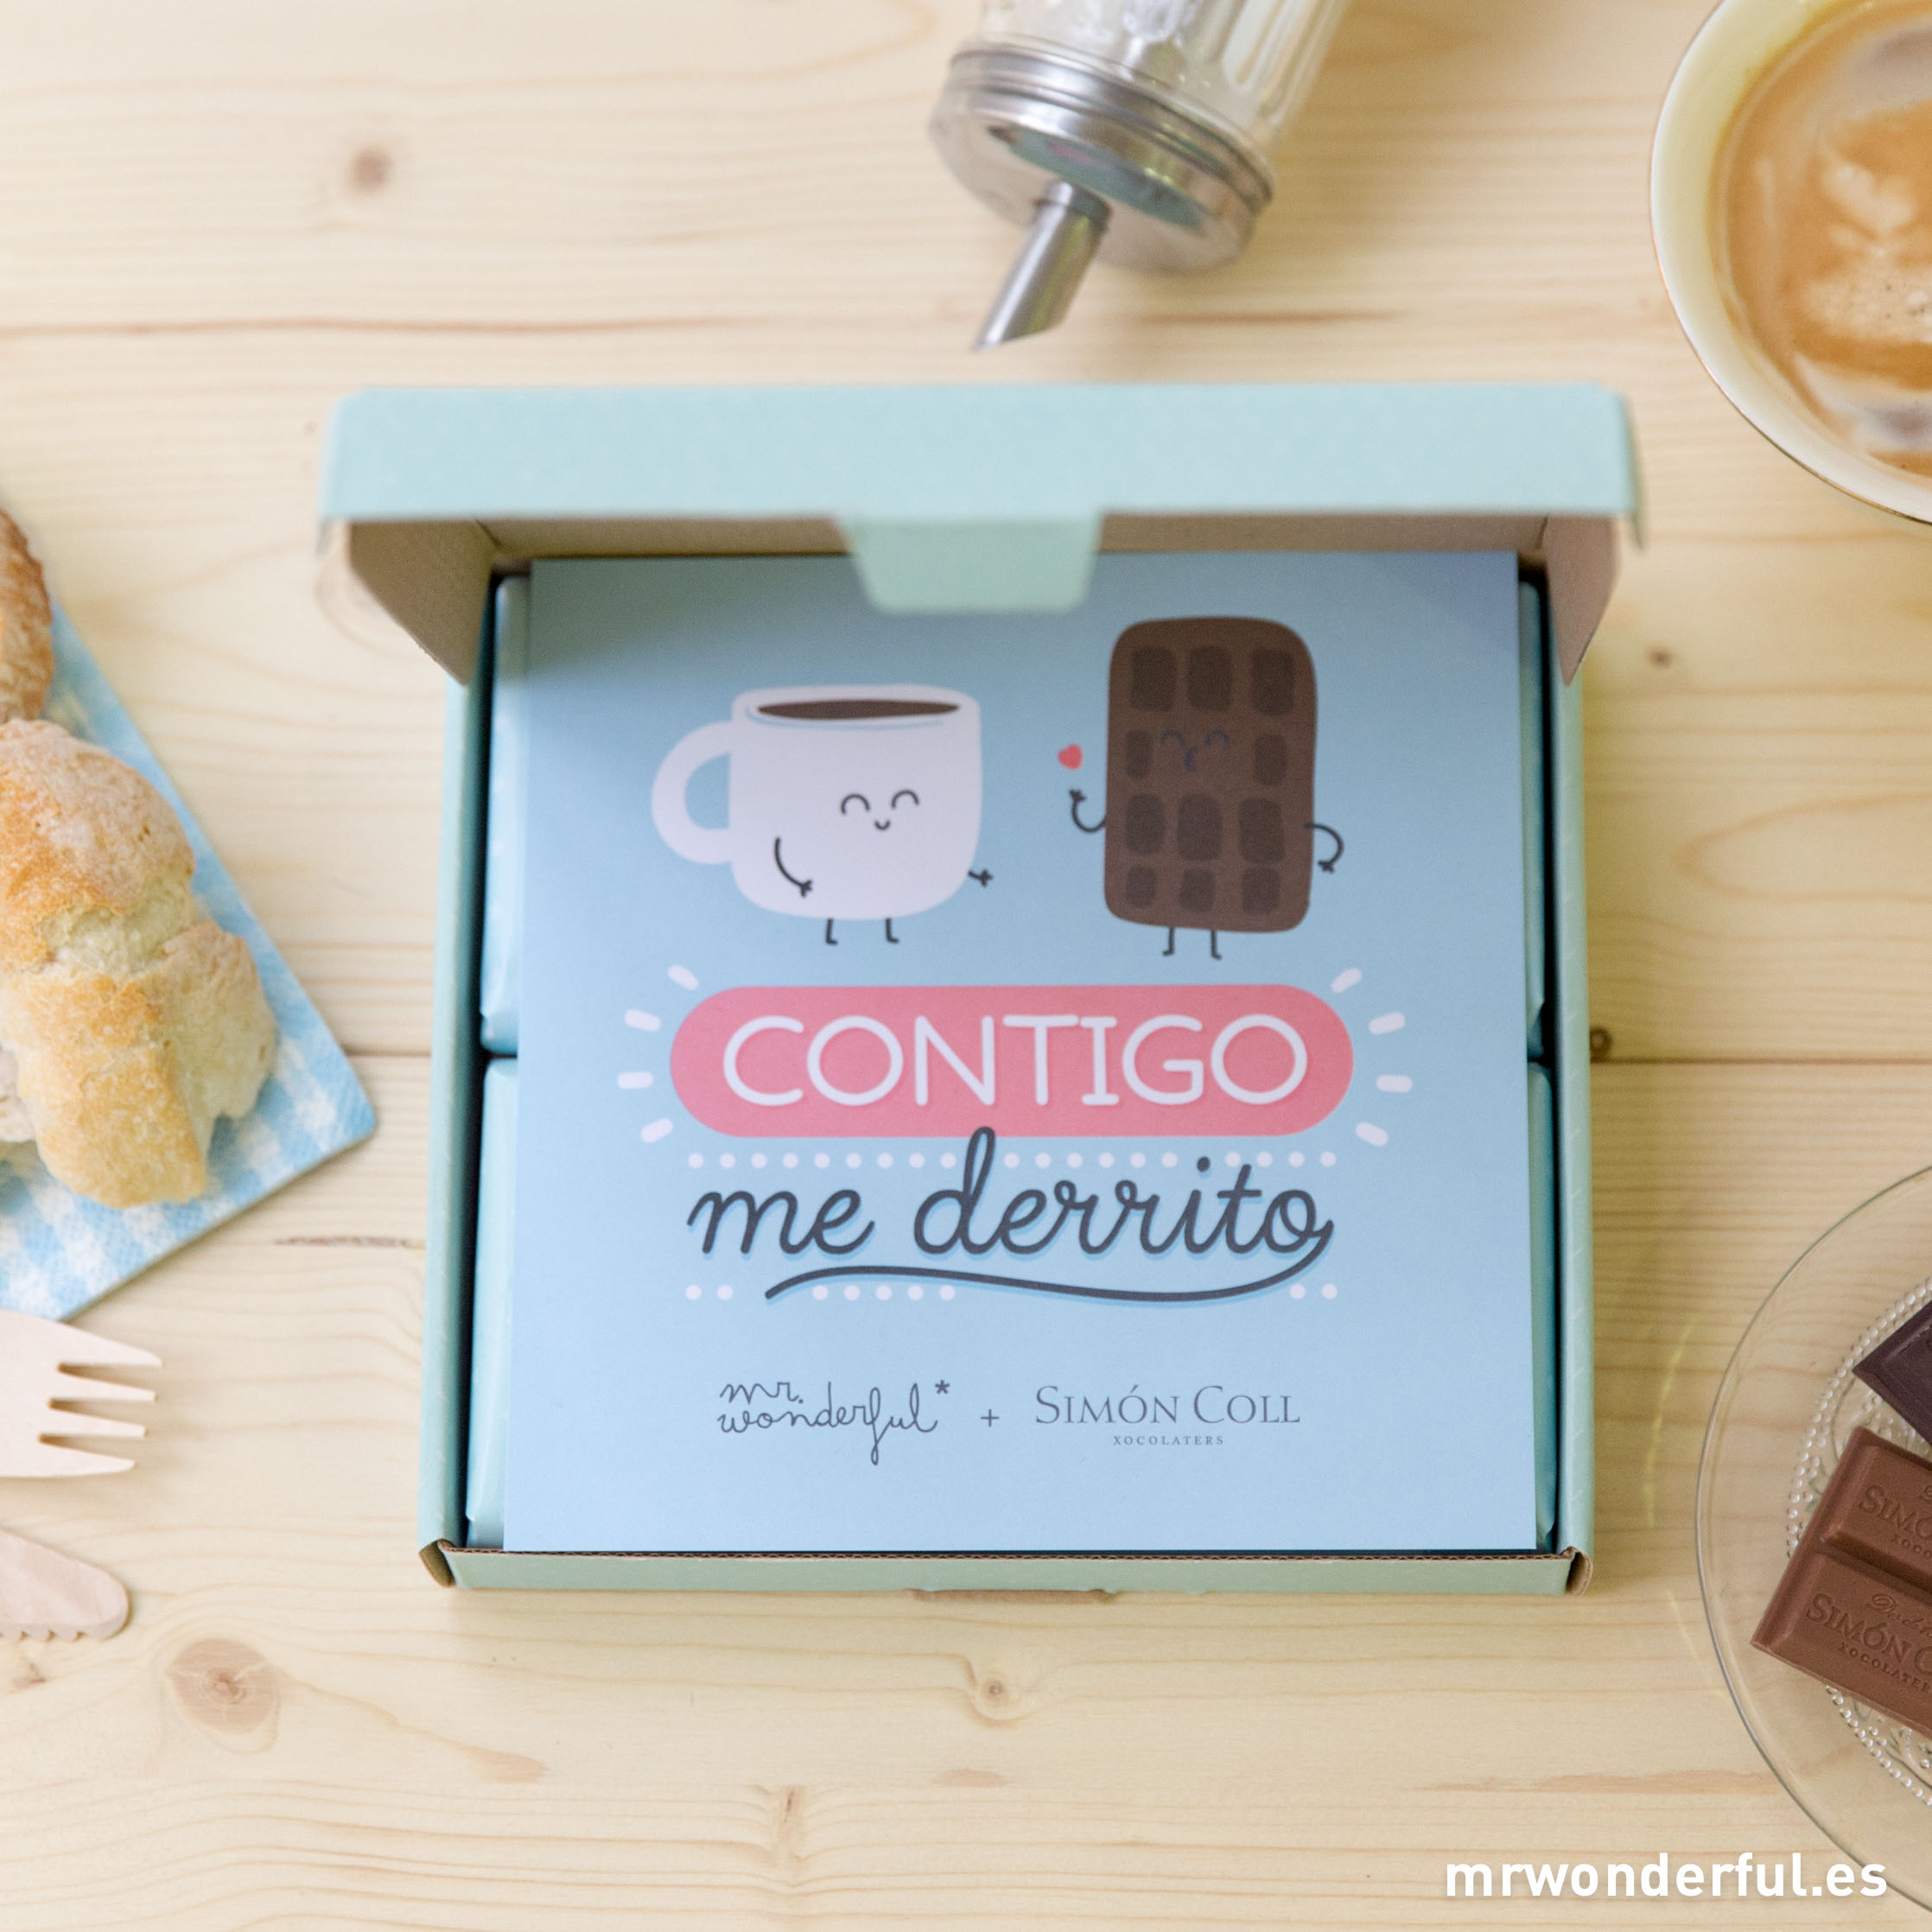 mrwonderful_chocolates-simon-coll-2015-22